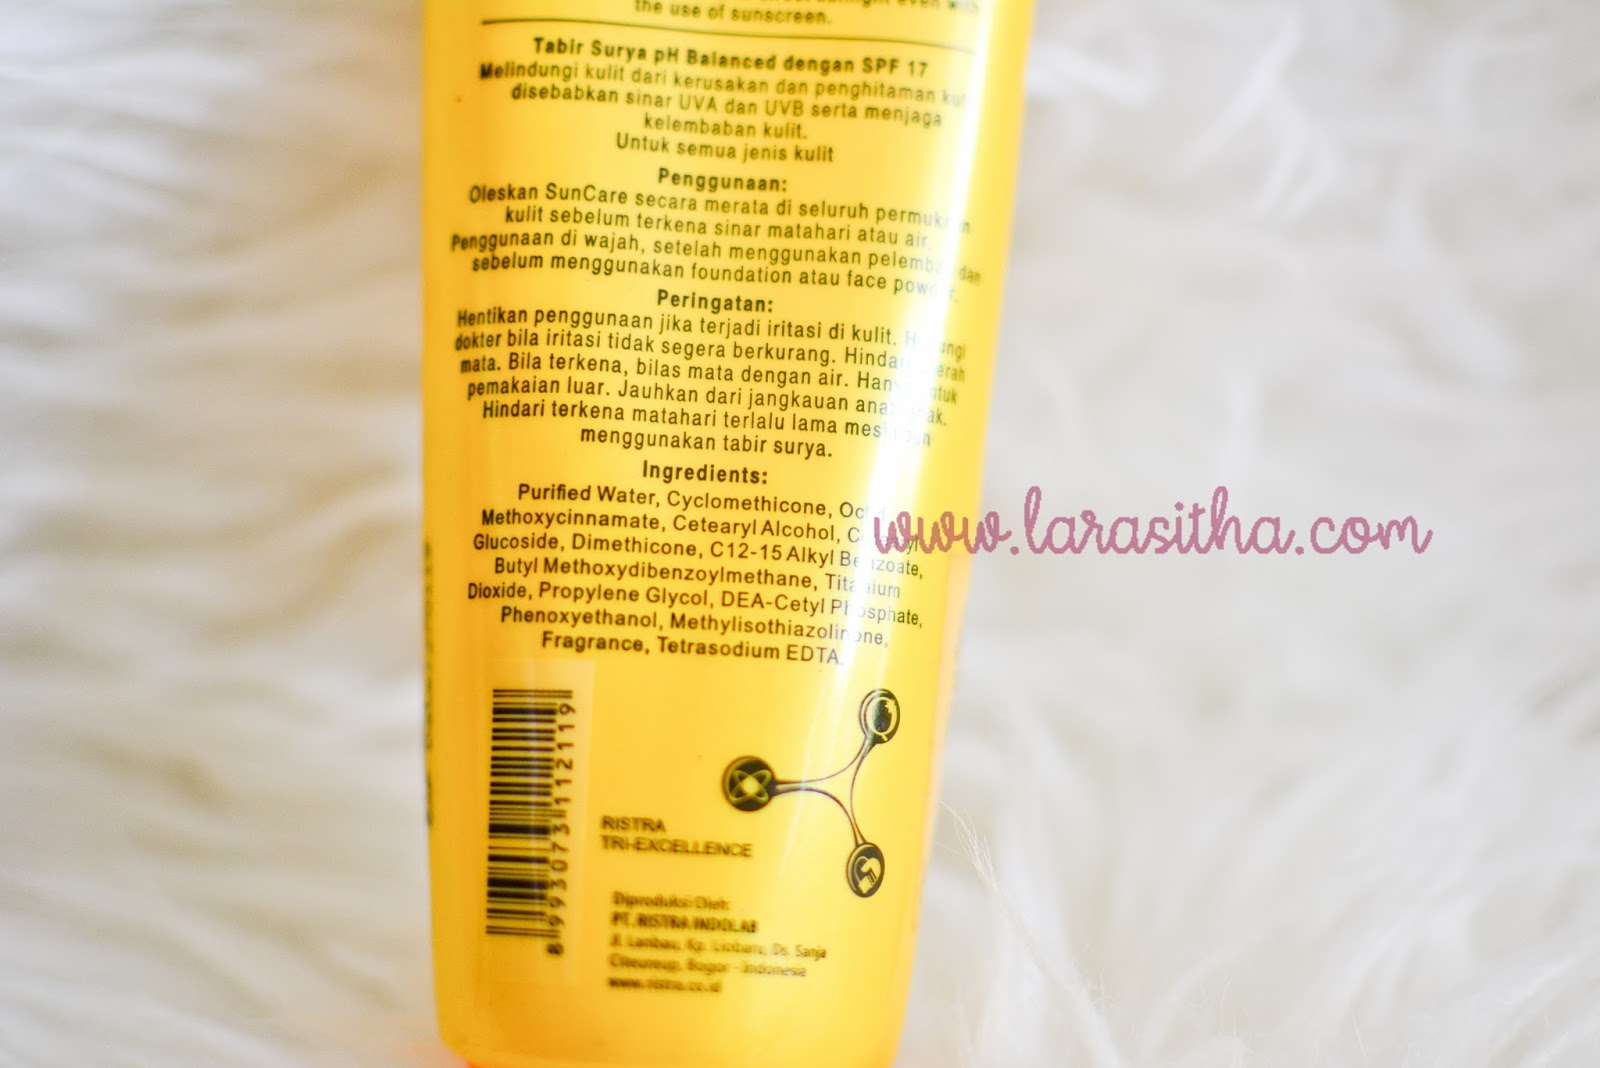 Review Sun Protection Emina Vs Suncare Ristra A Journal By Larasitha Sunscreen Kandungan Spf 17